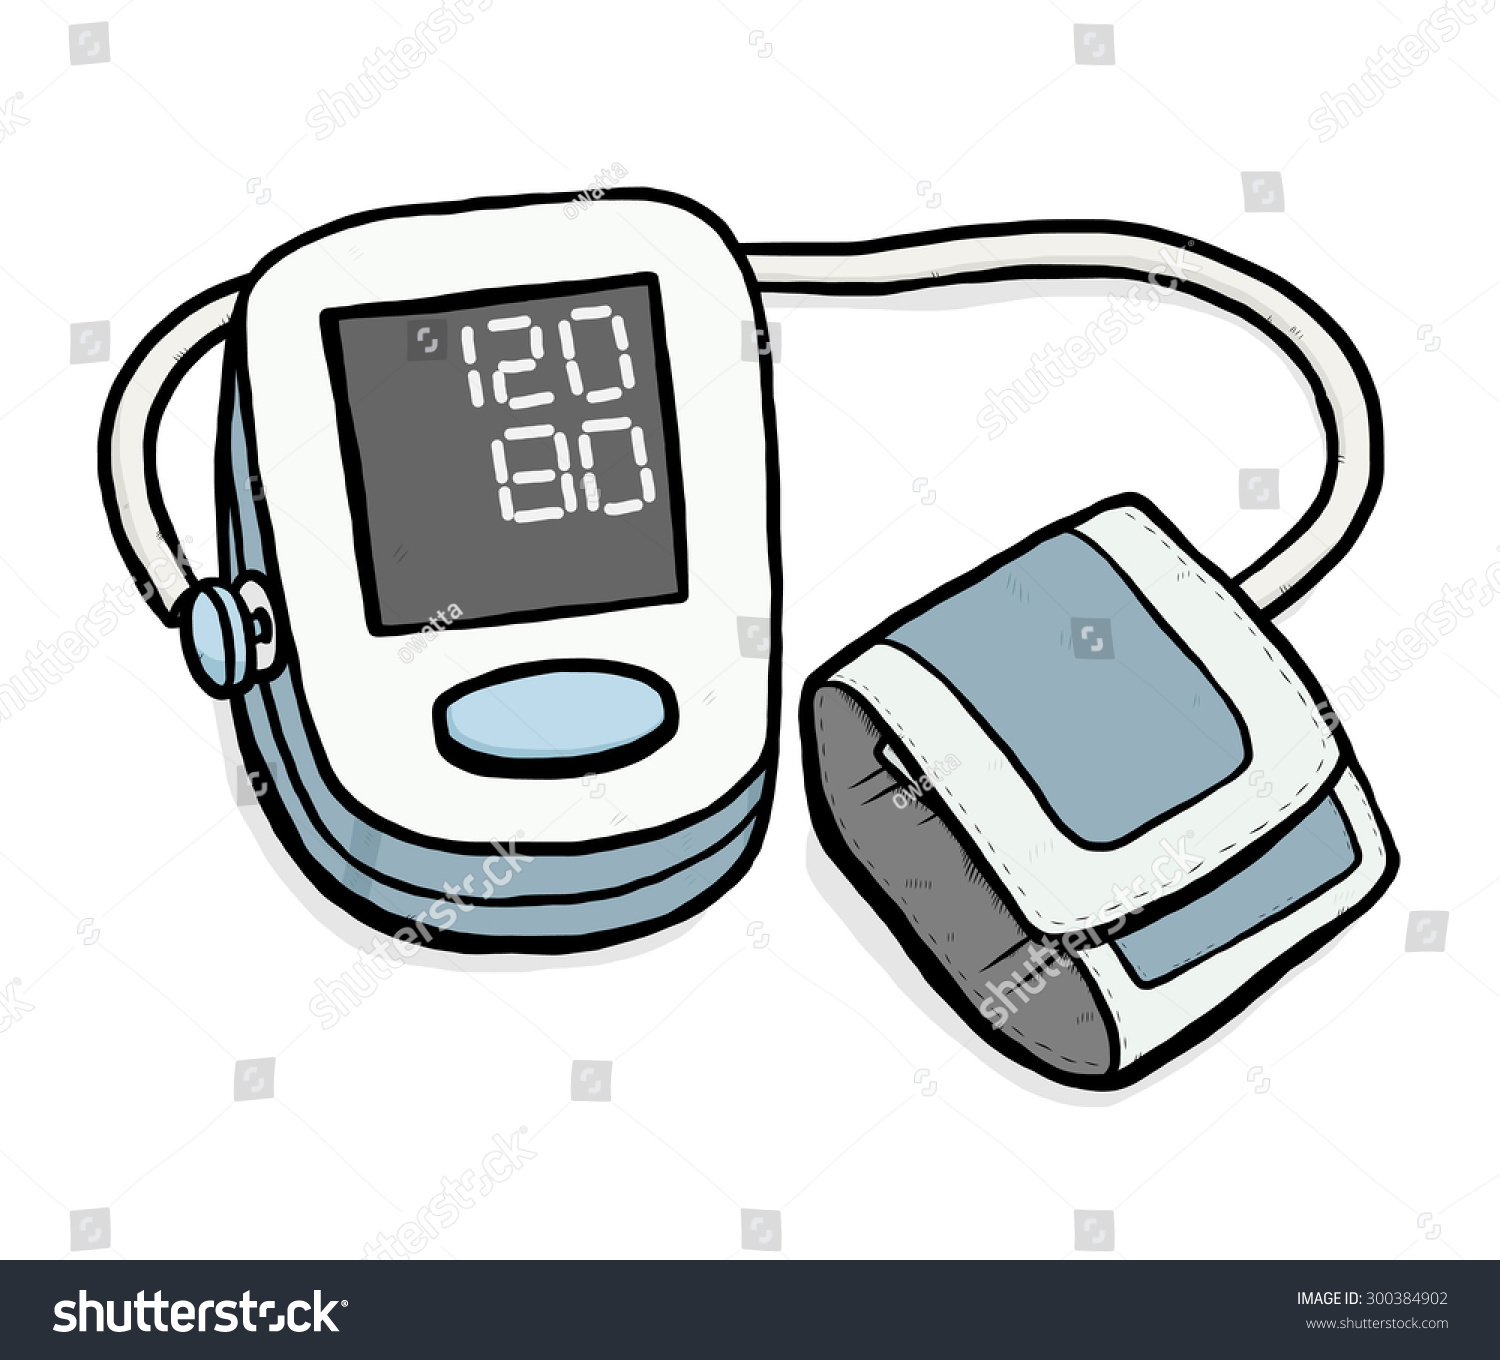 free clipart of blood pressure - photo #41